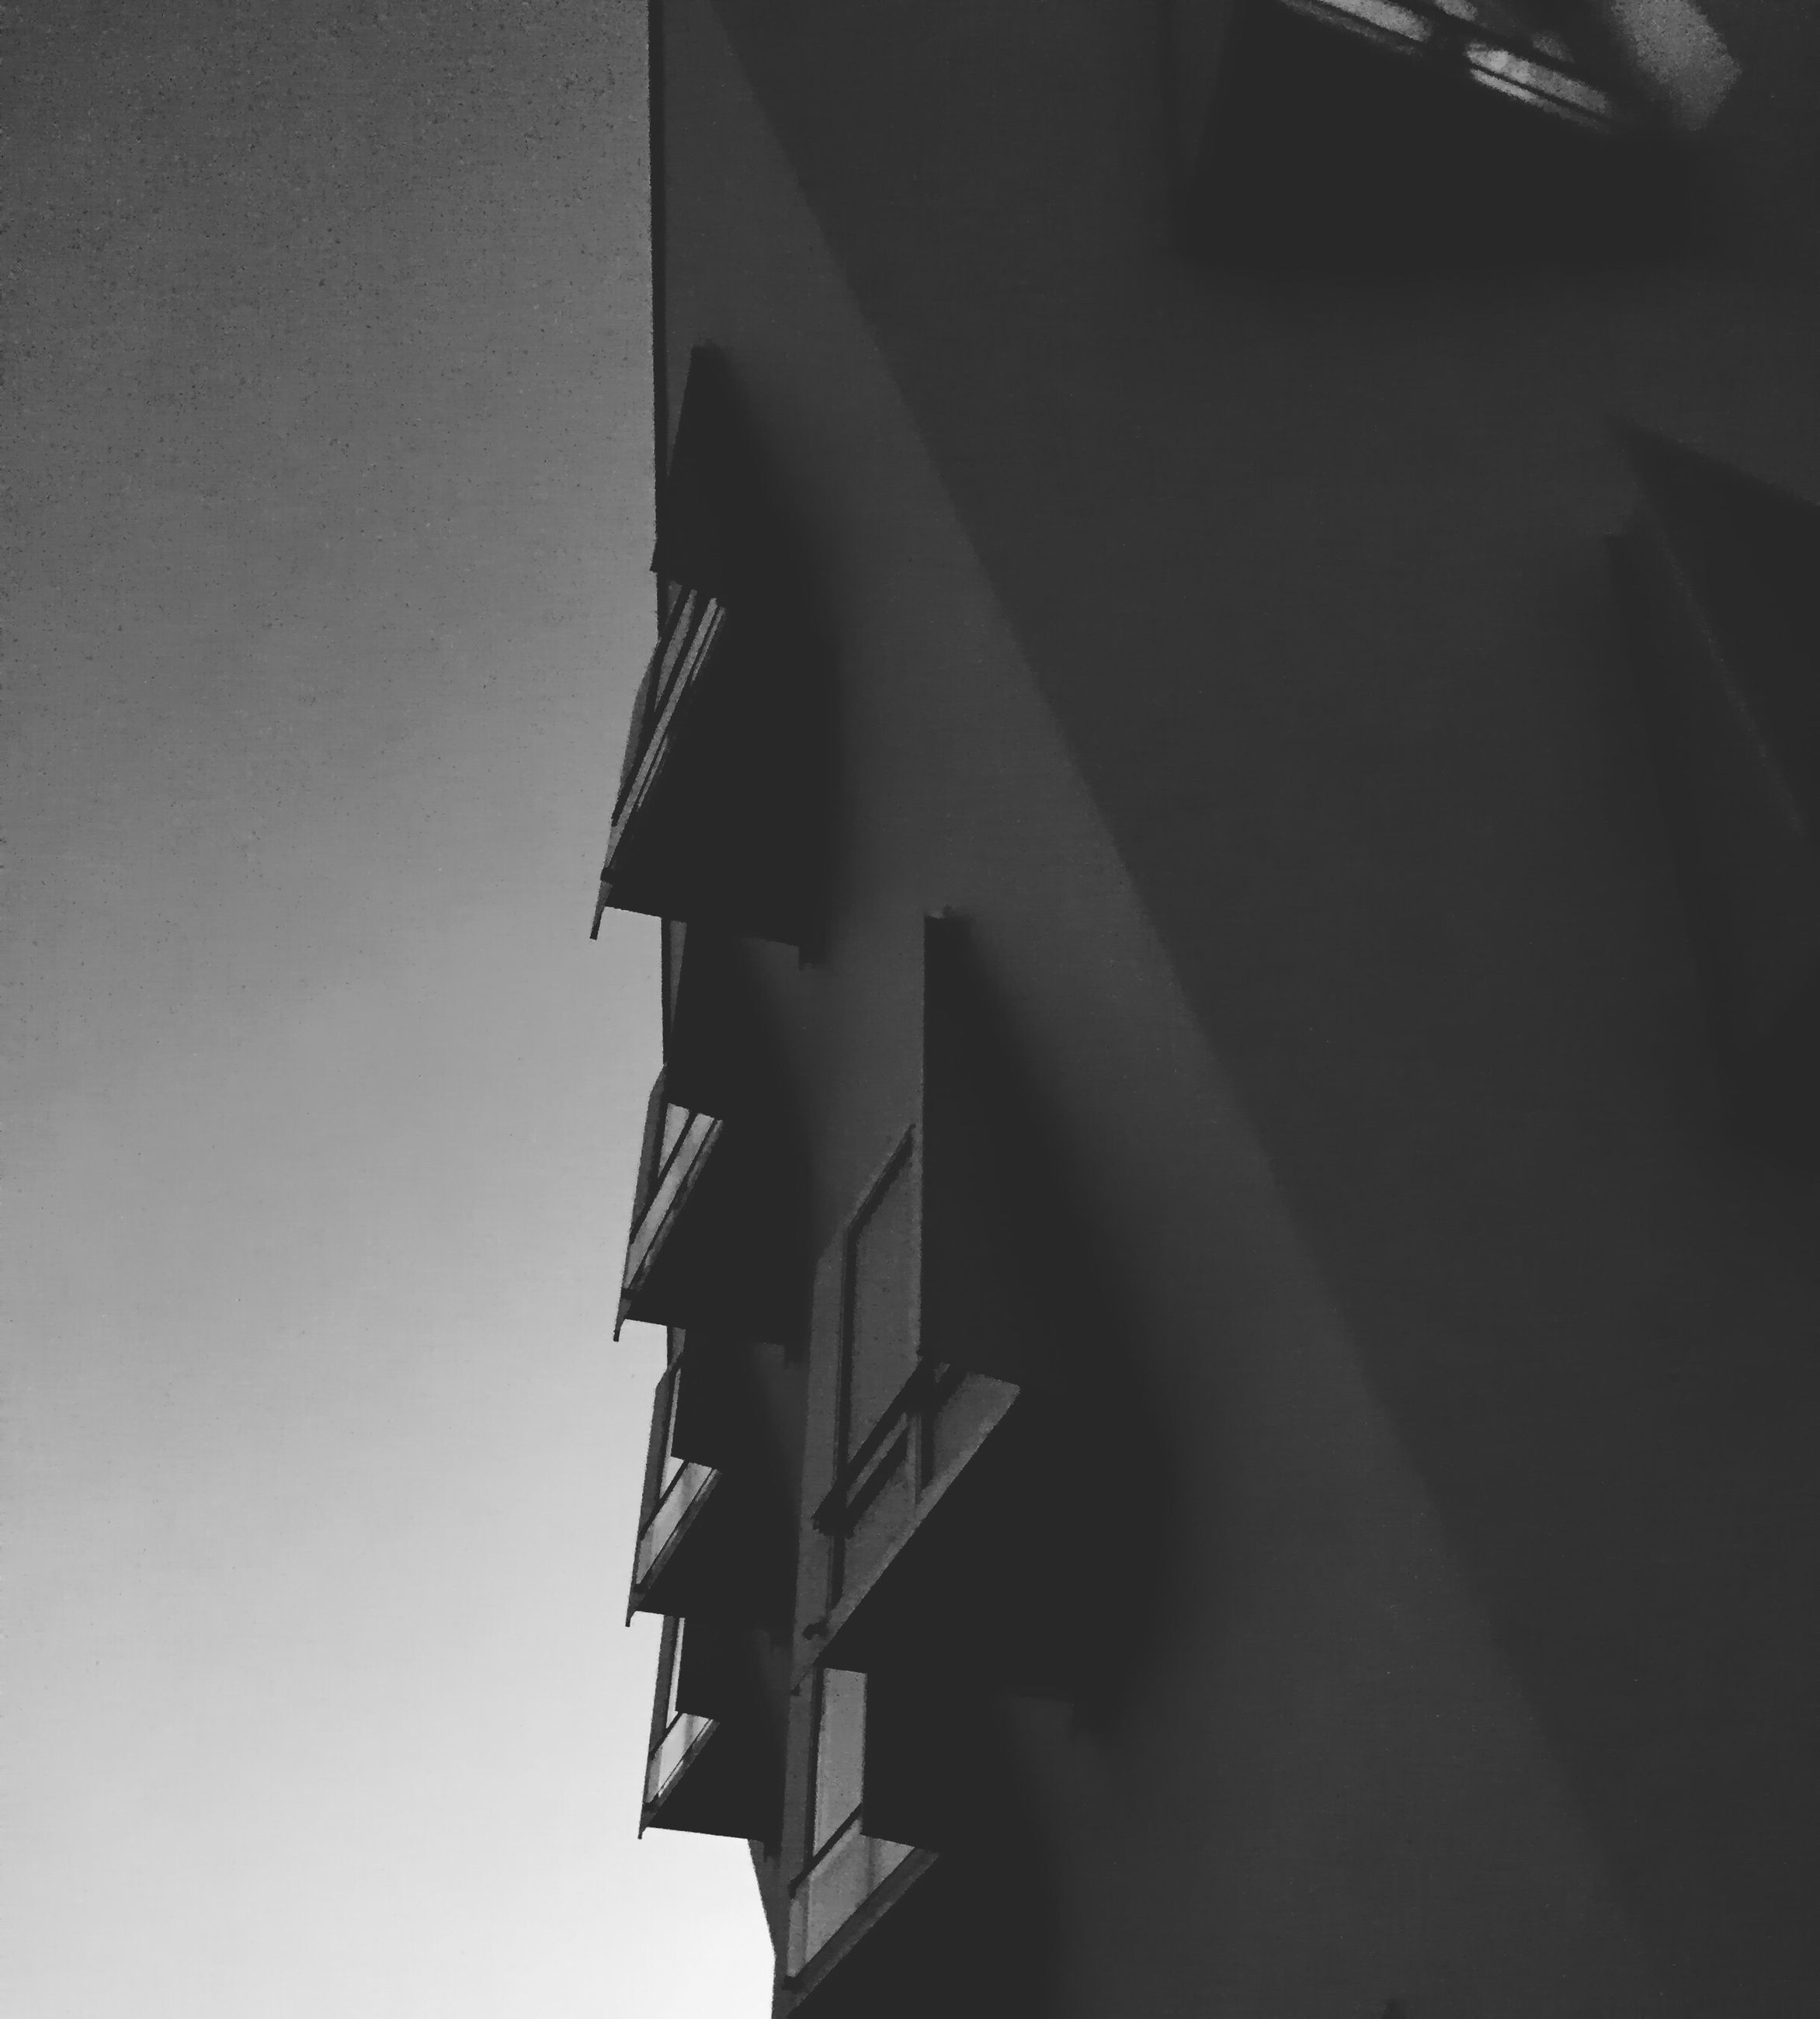 architecture, built structure, building exterior, low angle view, building, one person, shadow, wall - building feature, city, copy space, part of, residential building, window, indoors, residential structure, sunlight, day, house, cropped